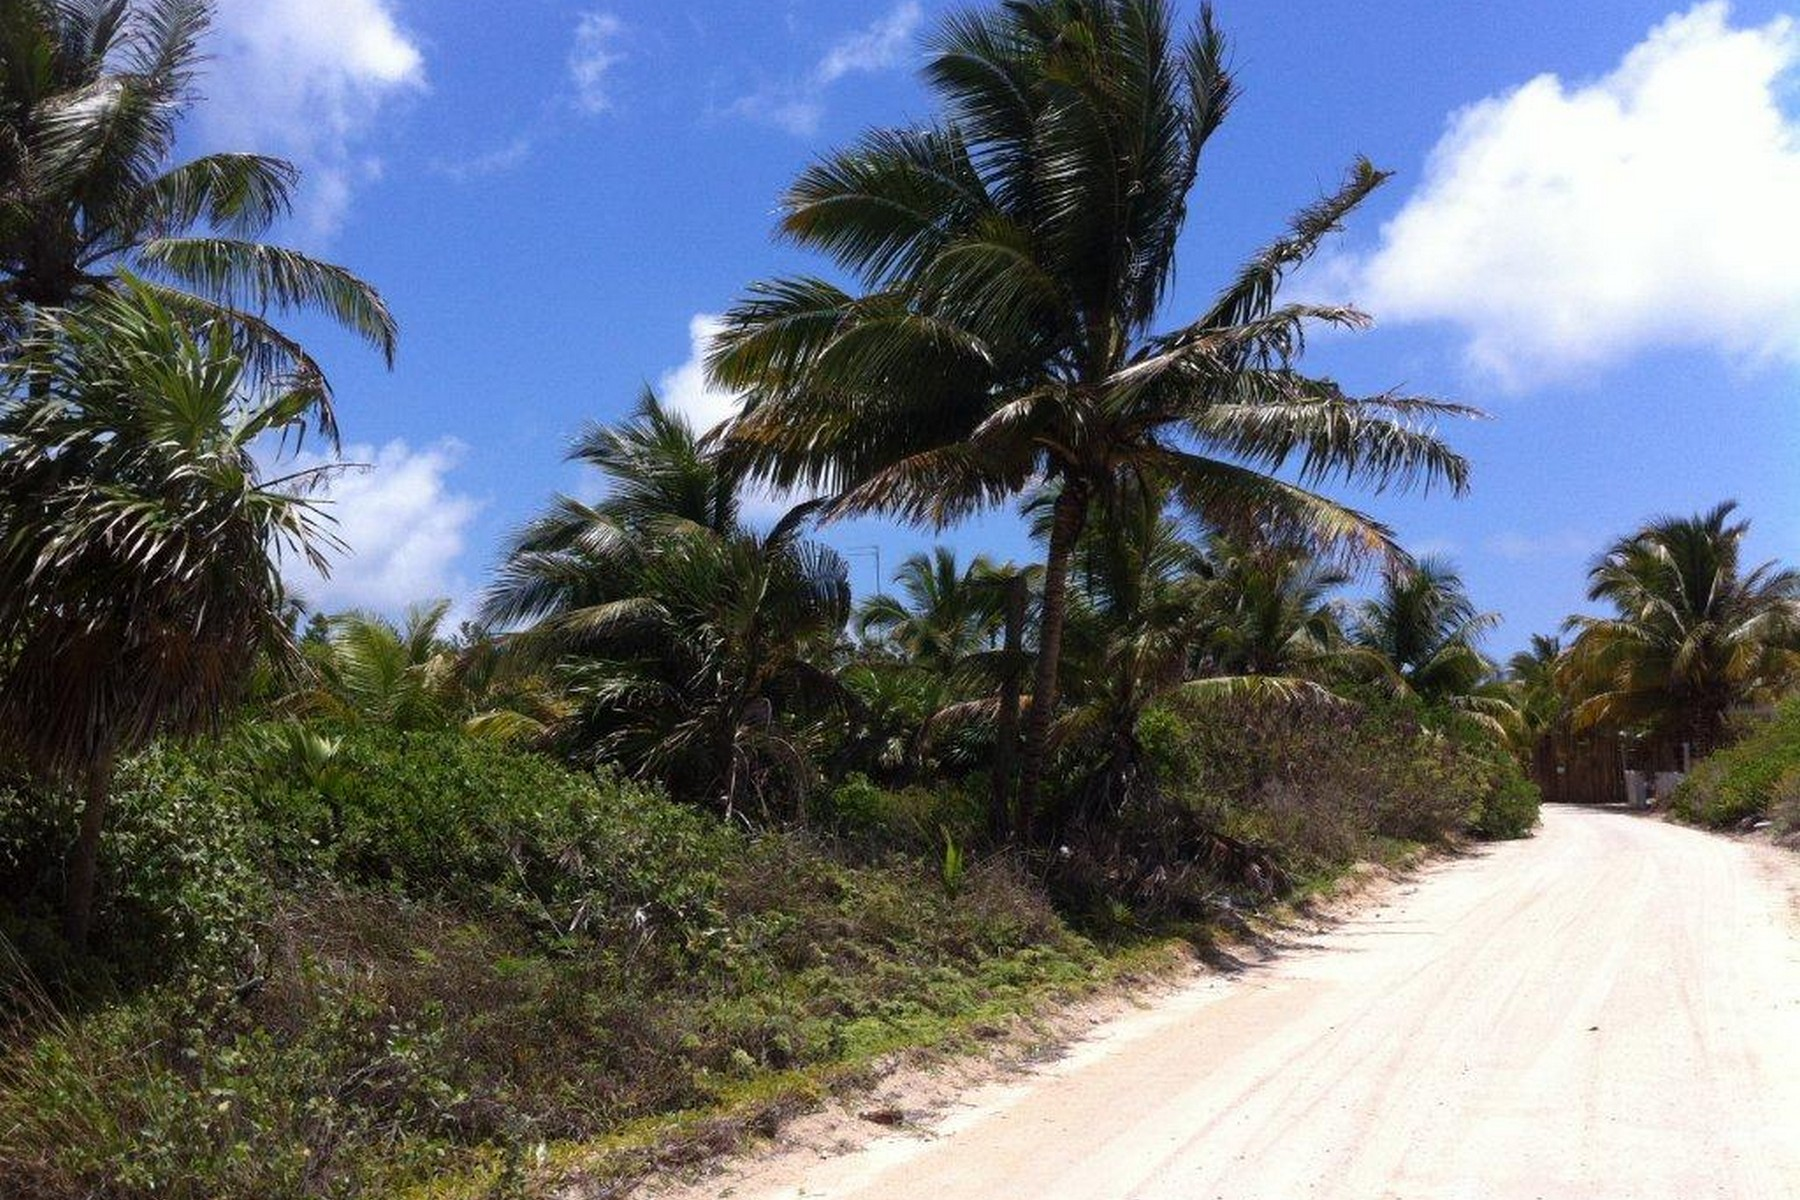 Additional photo for property listing at LOTES CON FRENTE DE PLAYA EN XCALAK Beachfront Lots in Xcalak Lote número OCHO y NUEVE Xcalak, Quintana Roo 77940 México